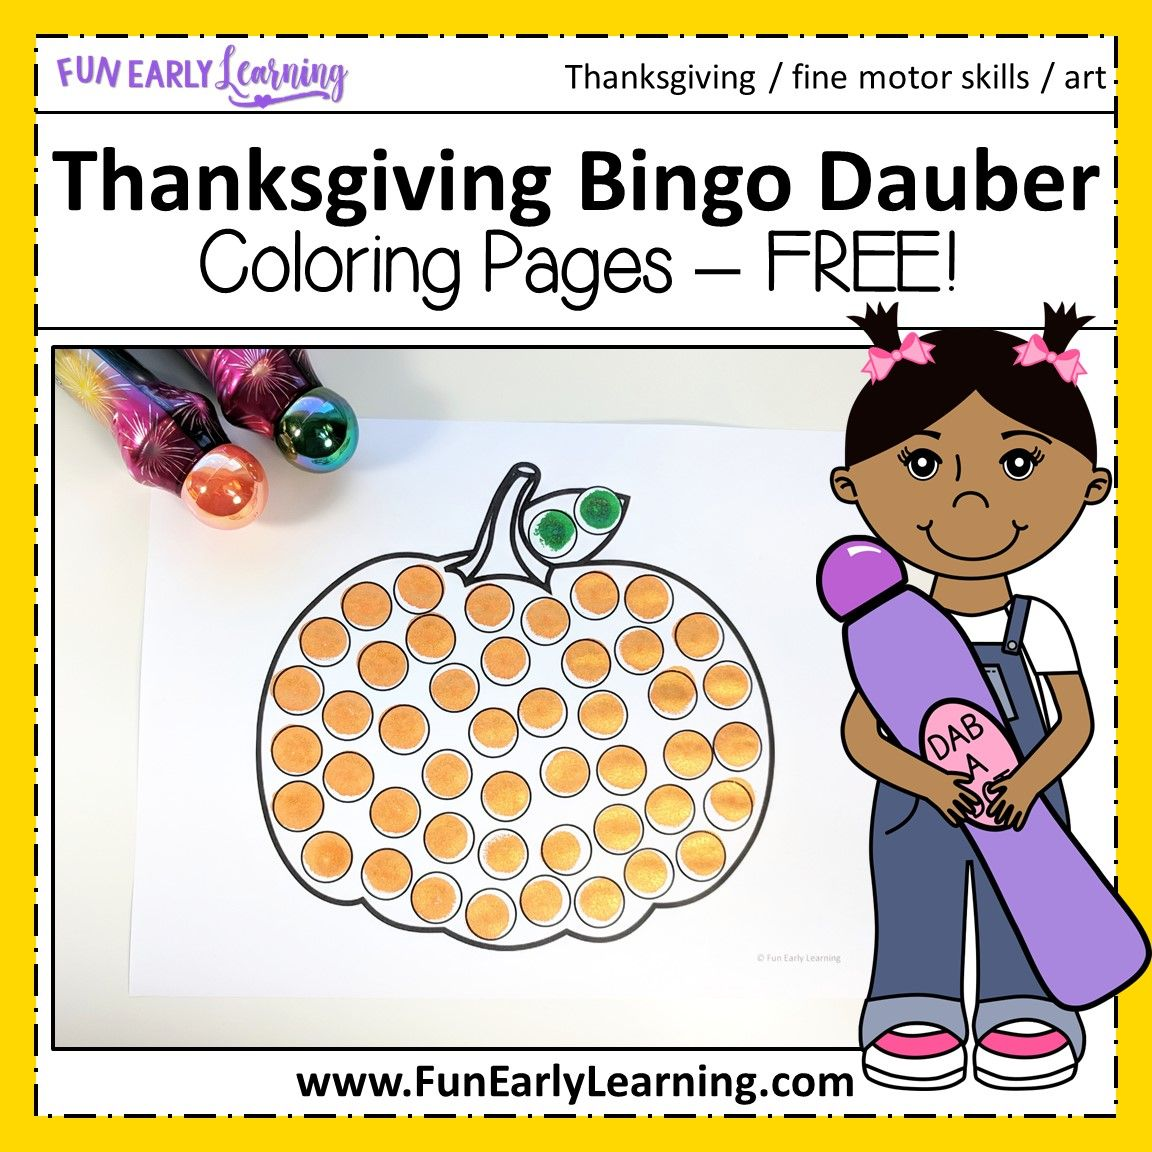 Thanksgiving Bingo Dauber Coloring Pages